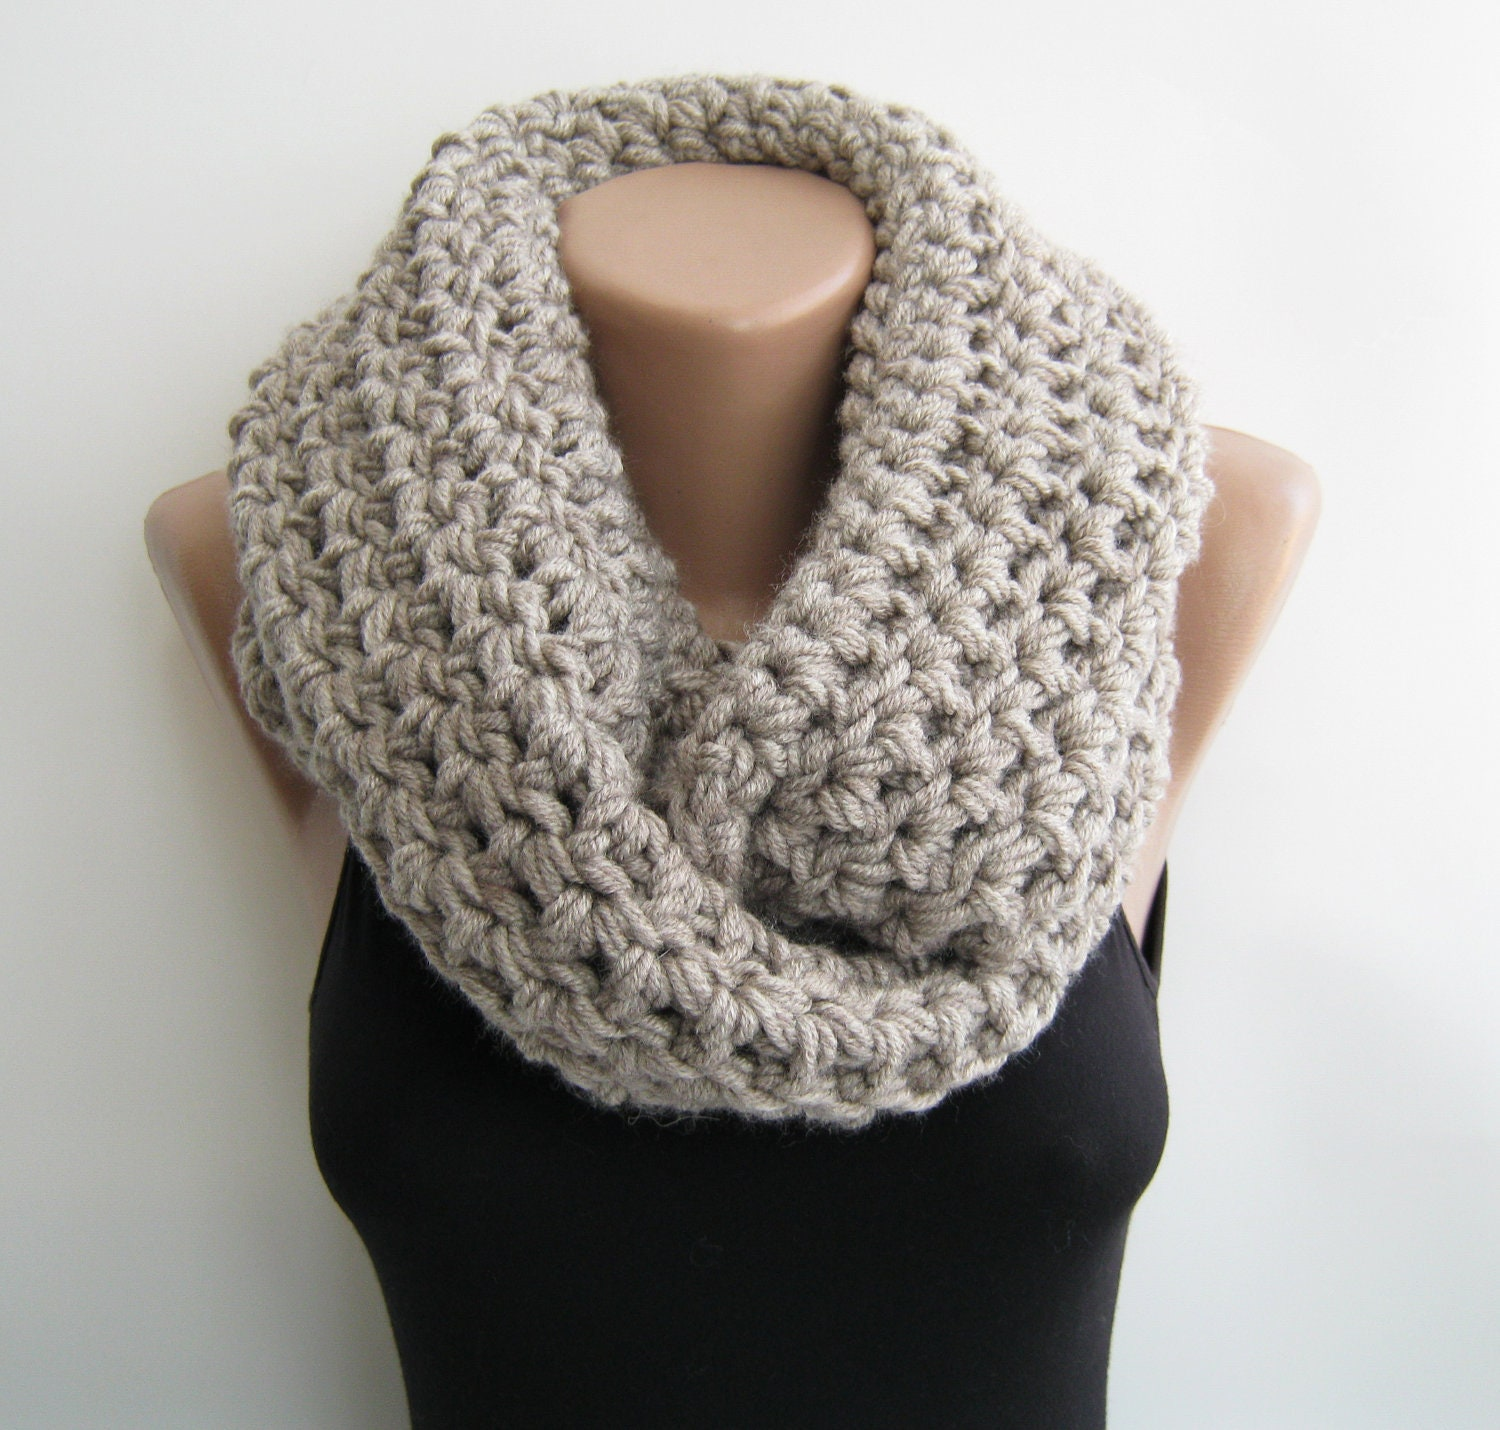 Crochet infinity scarf oat meal chunky circle by sascarves on Etsy